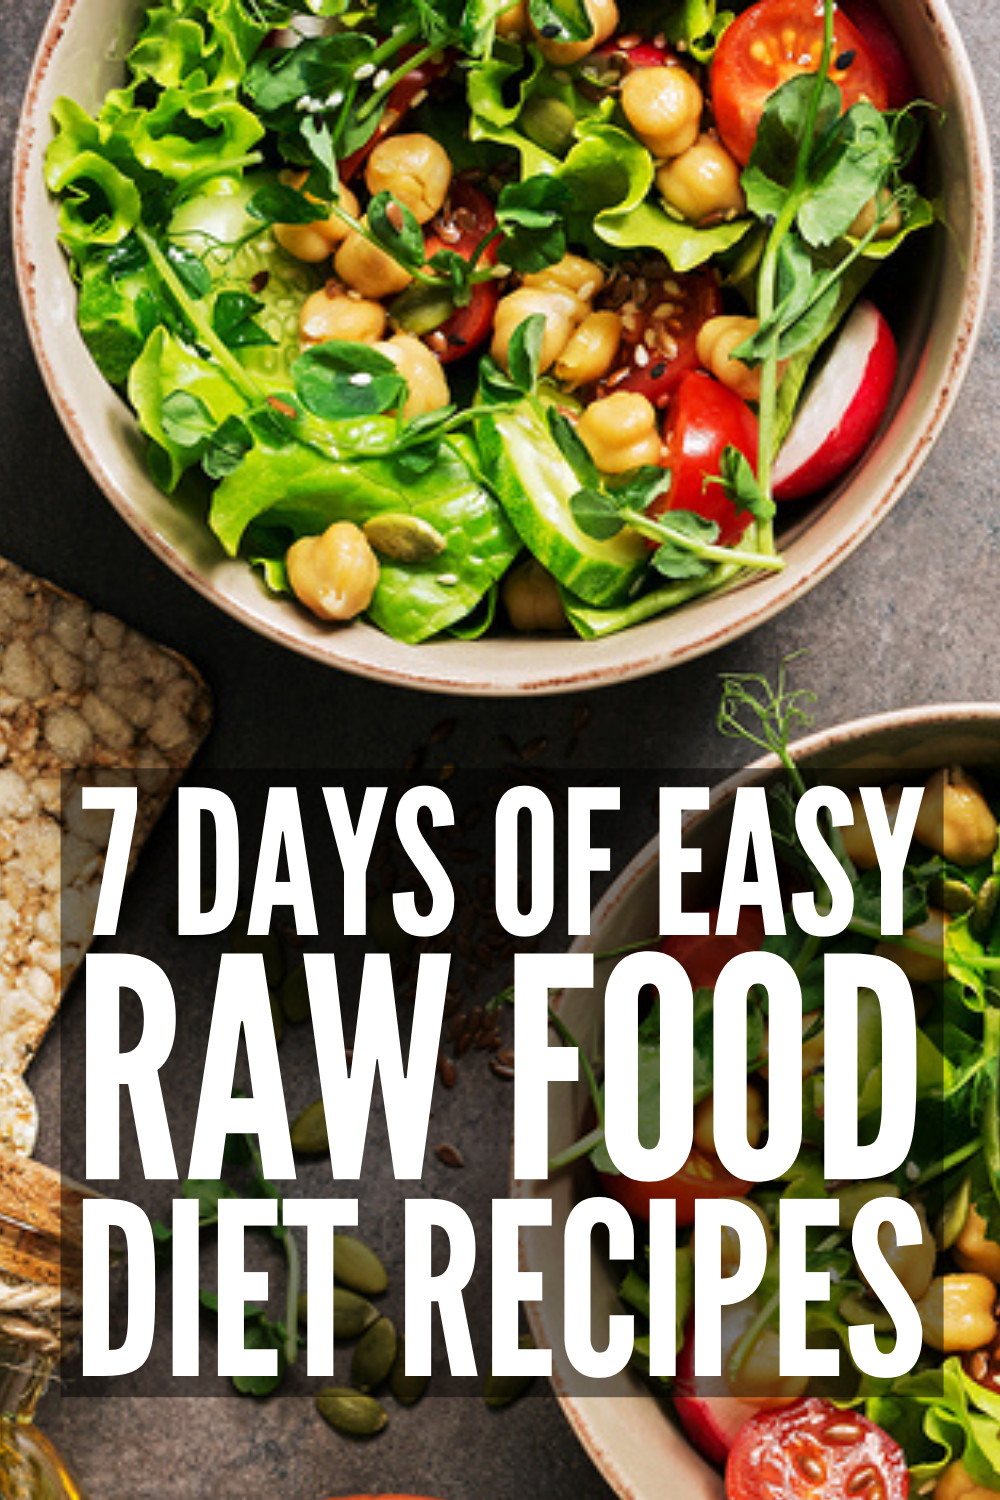 Raw Vegan Plan  The Raw Food Diet 7 Day Meal Plan for Beginners